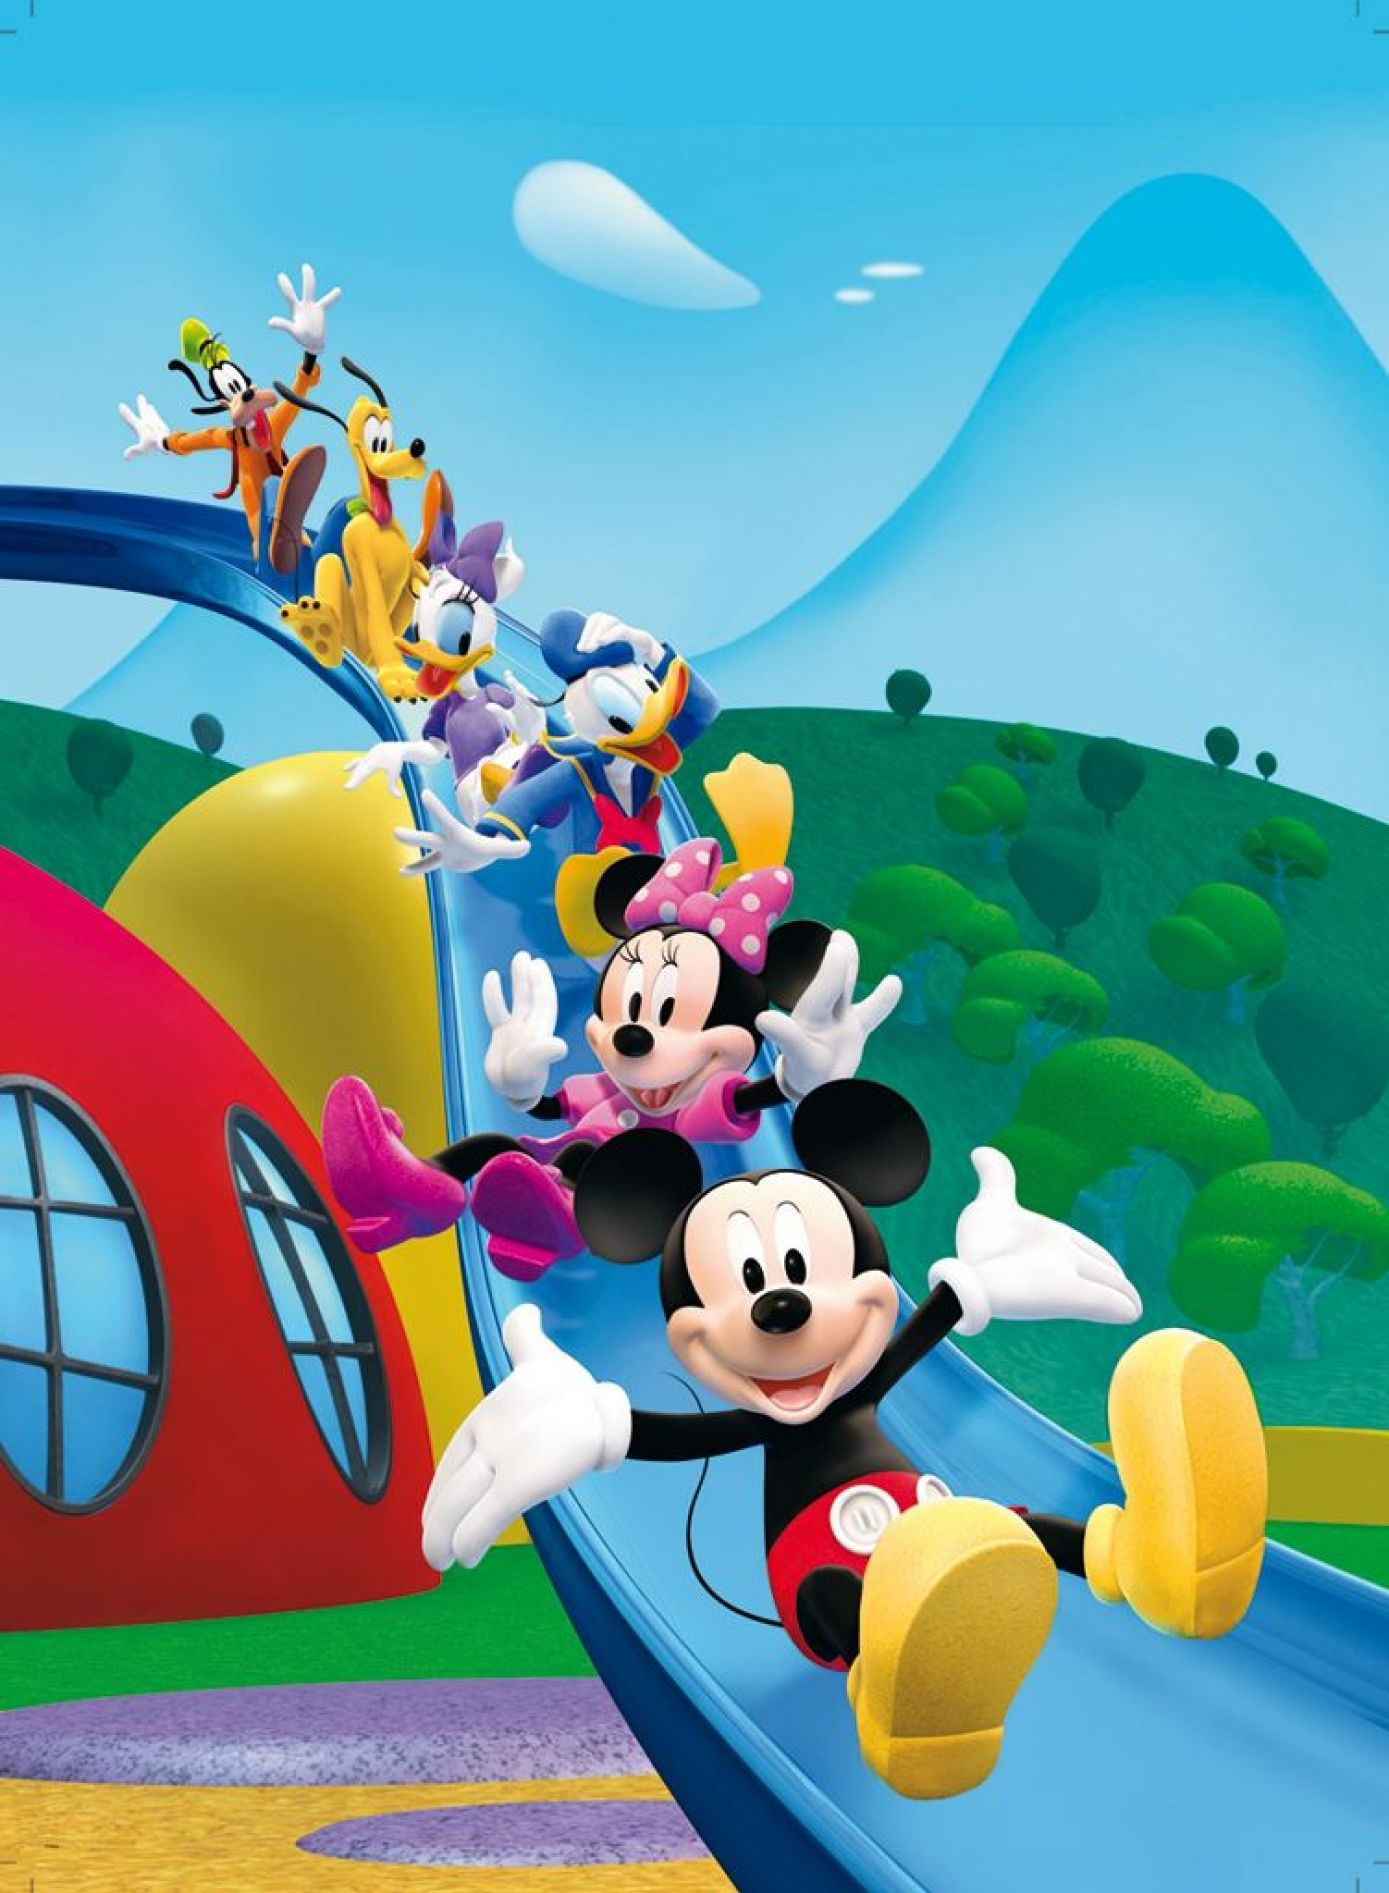 mickey mouse and friends morals